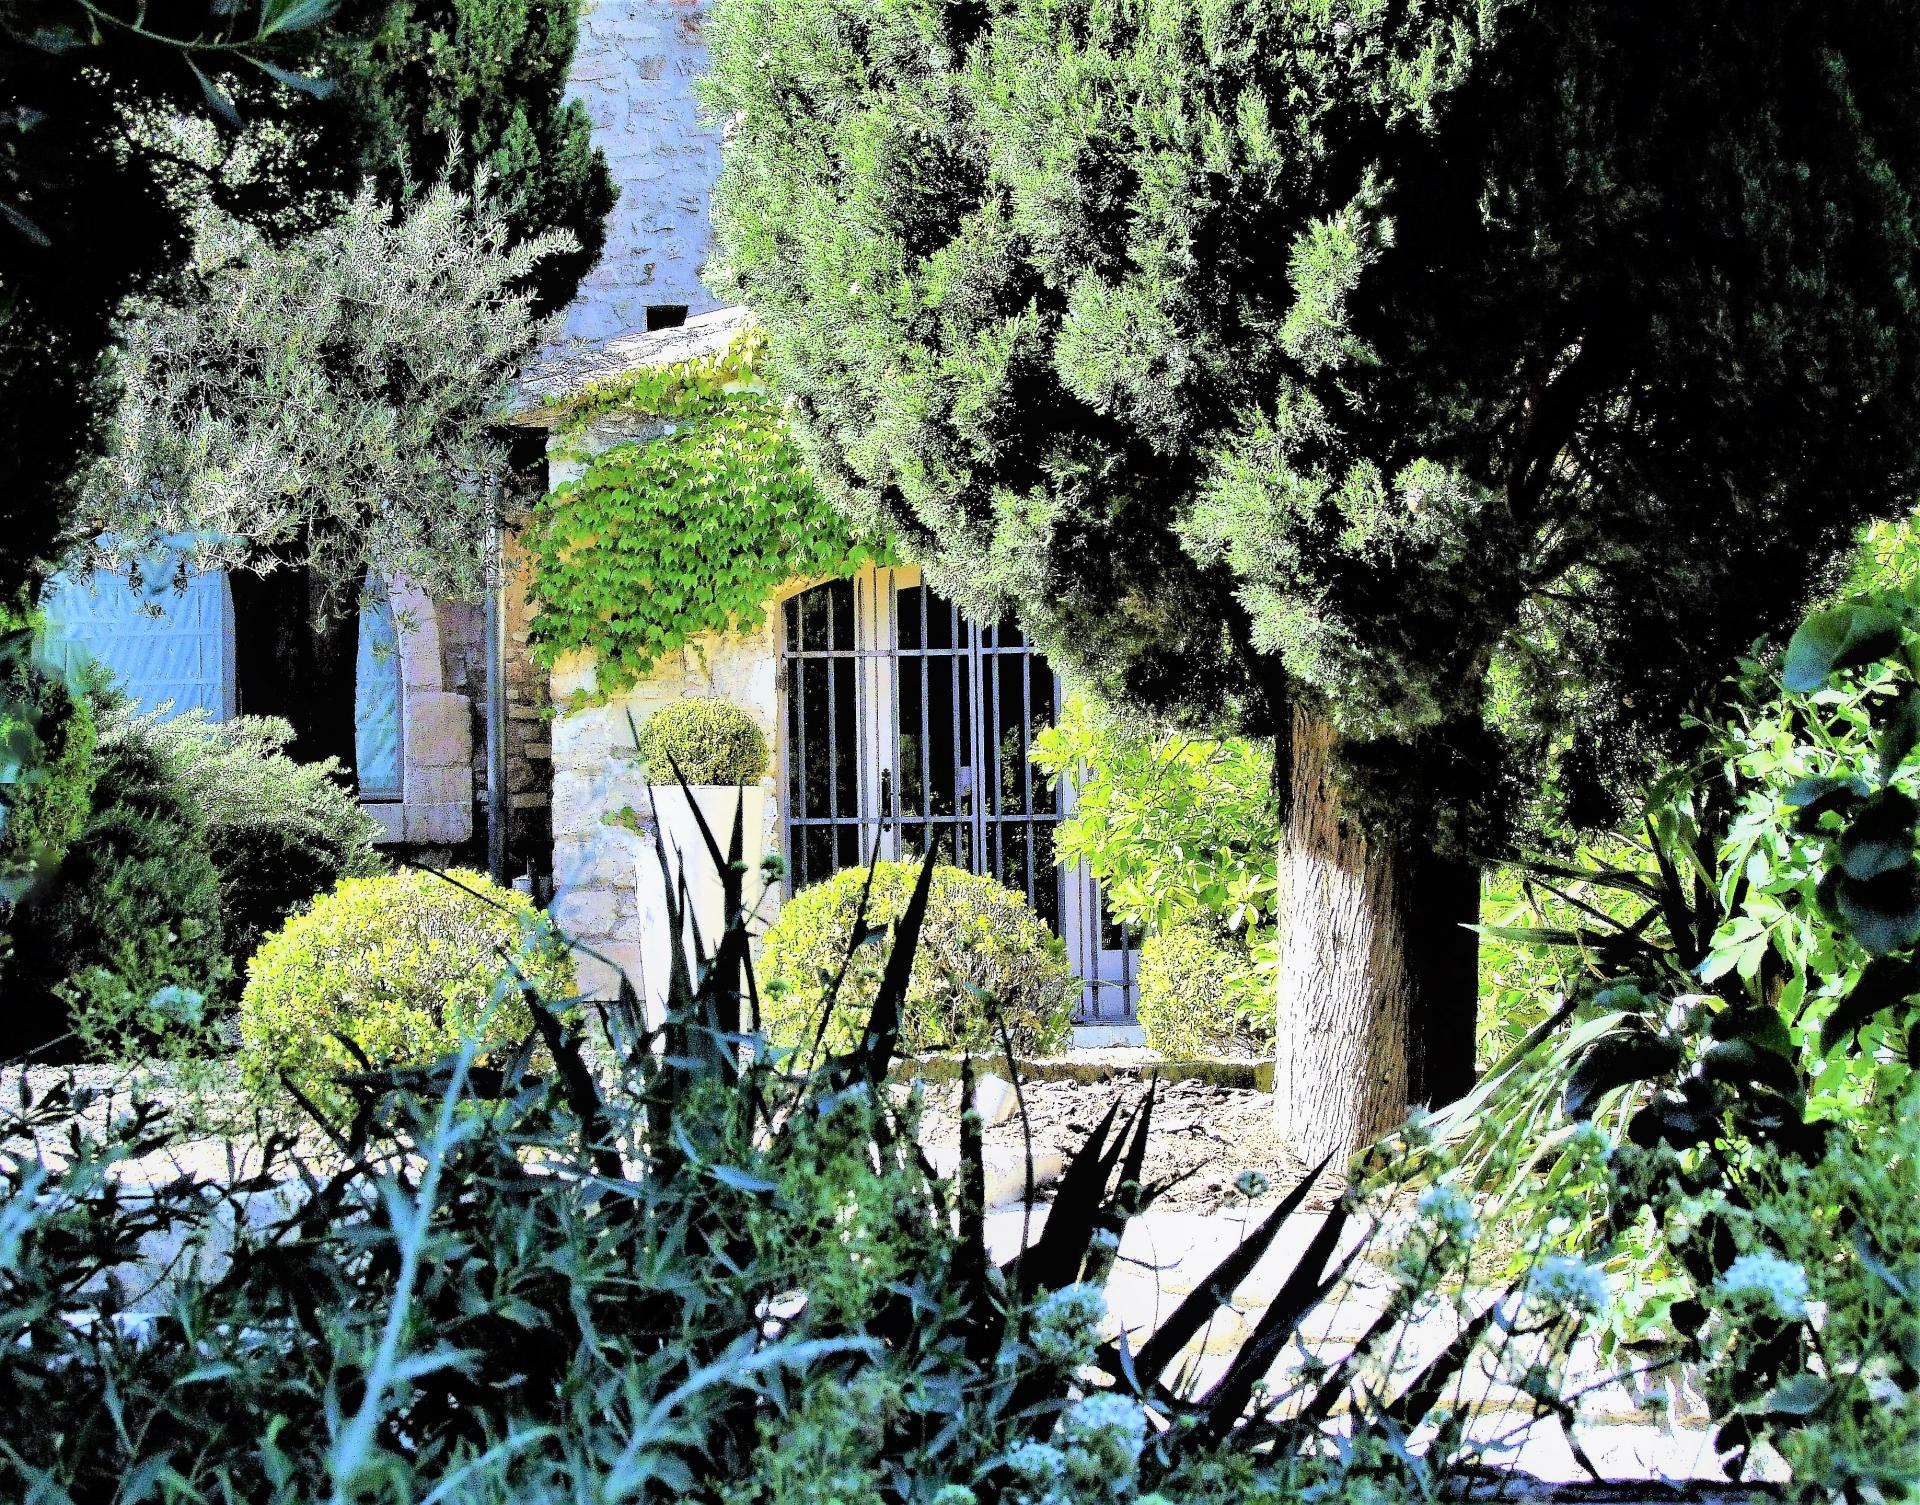 ENTRANCE TO A LUXURY VILLA RENTAL IN PROVENCE